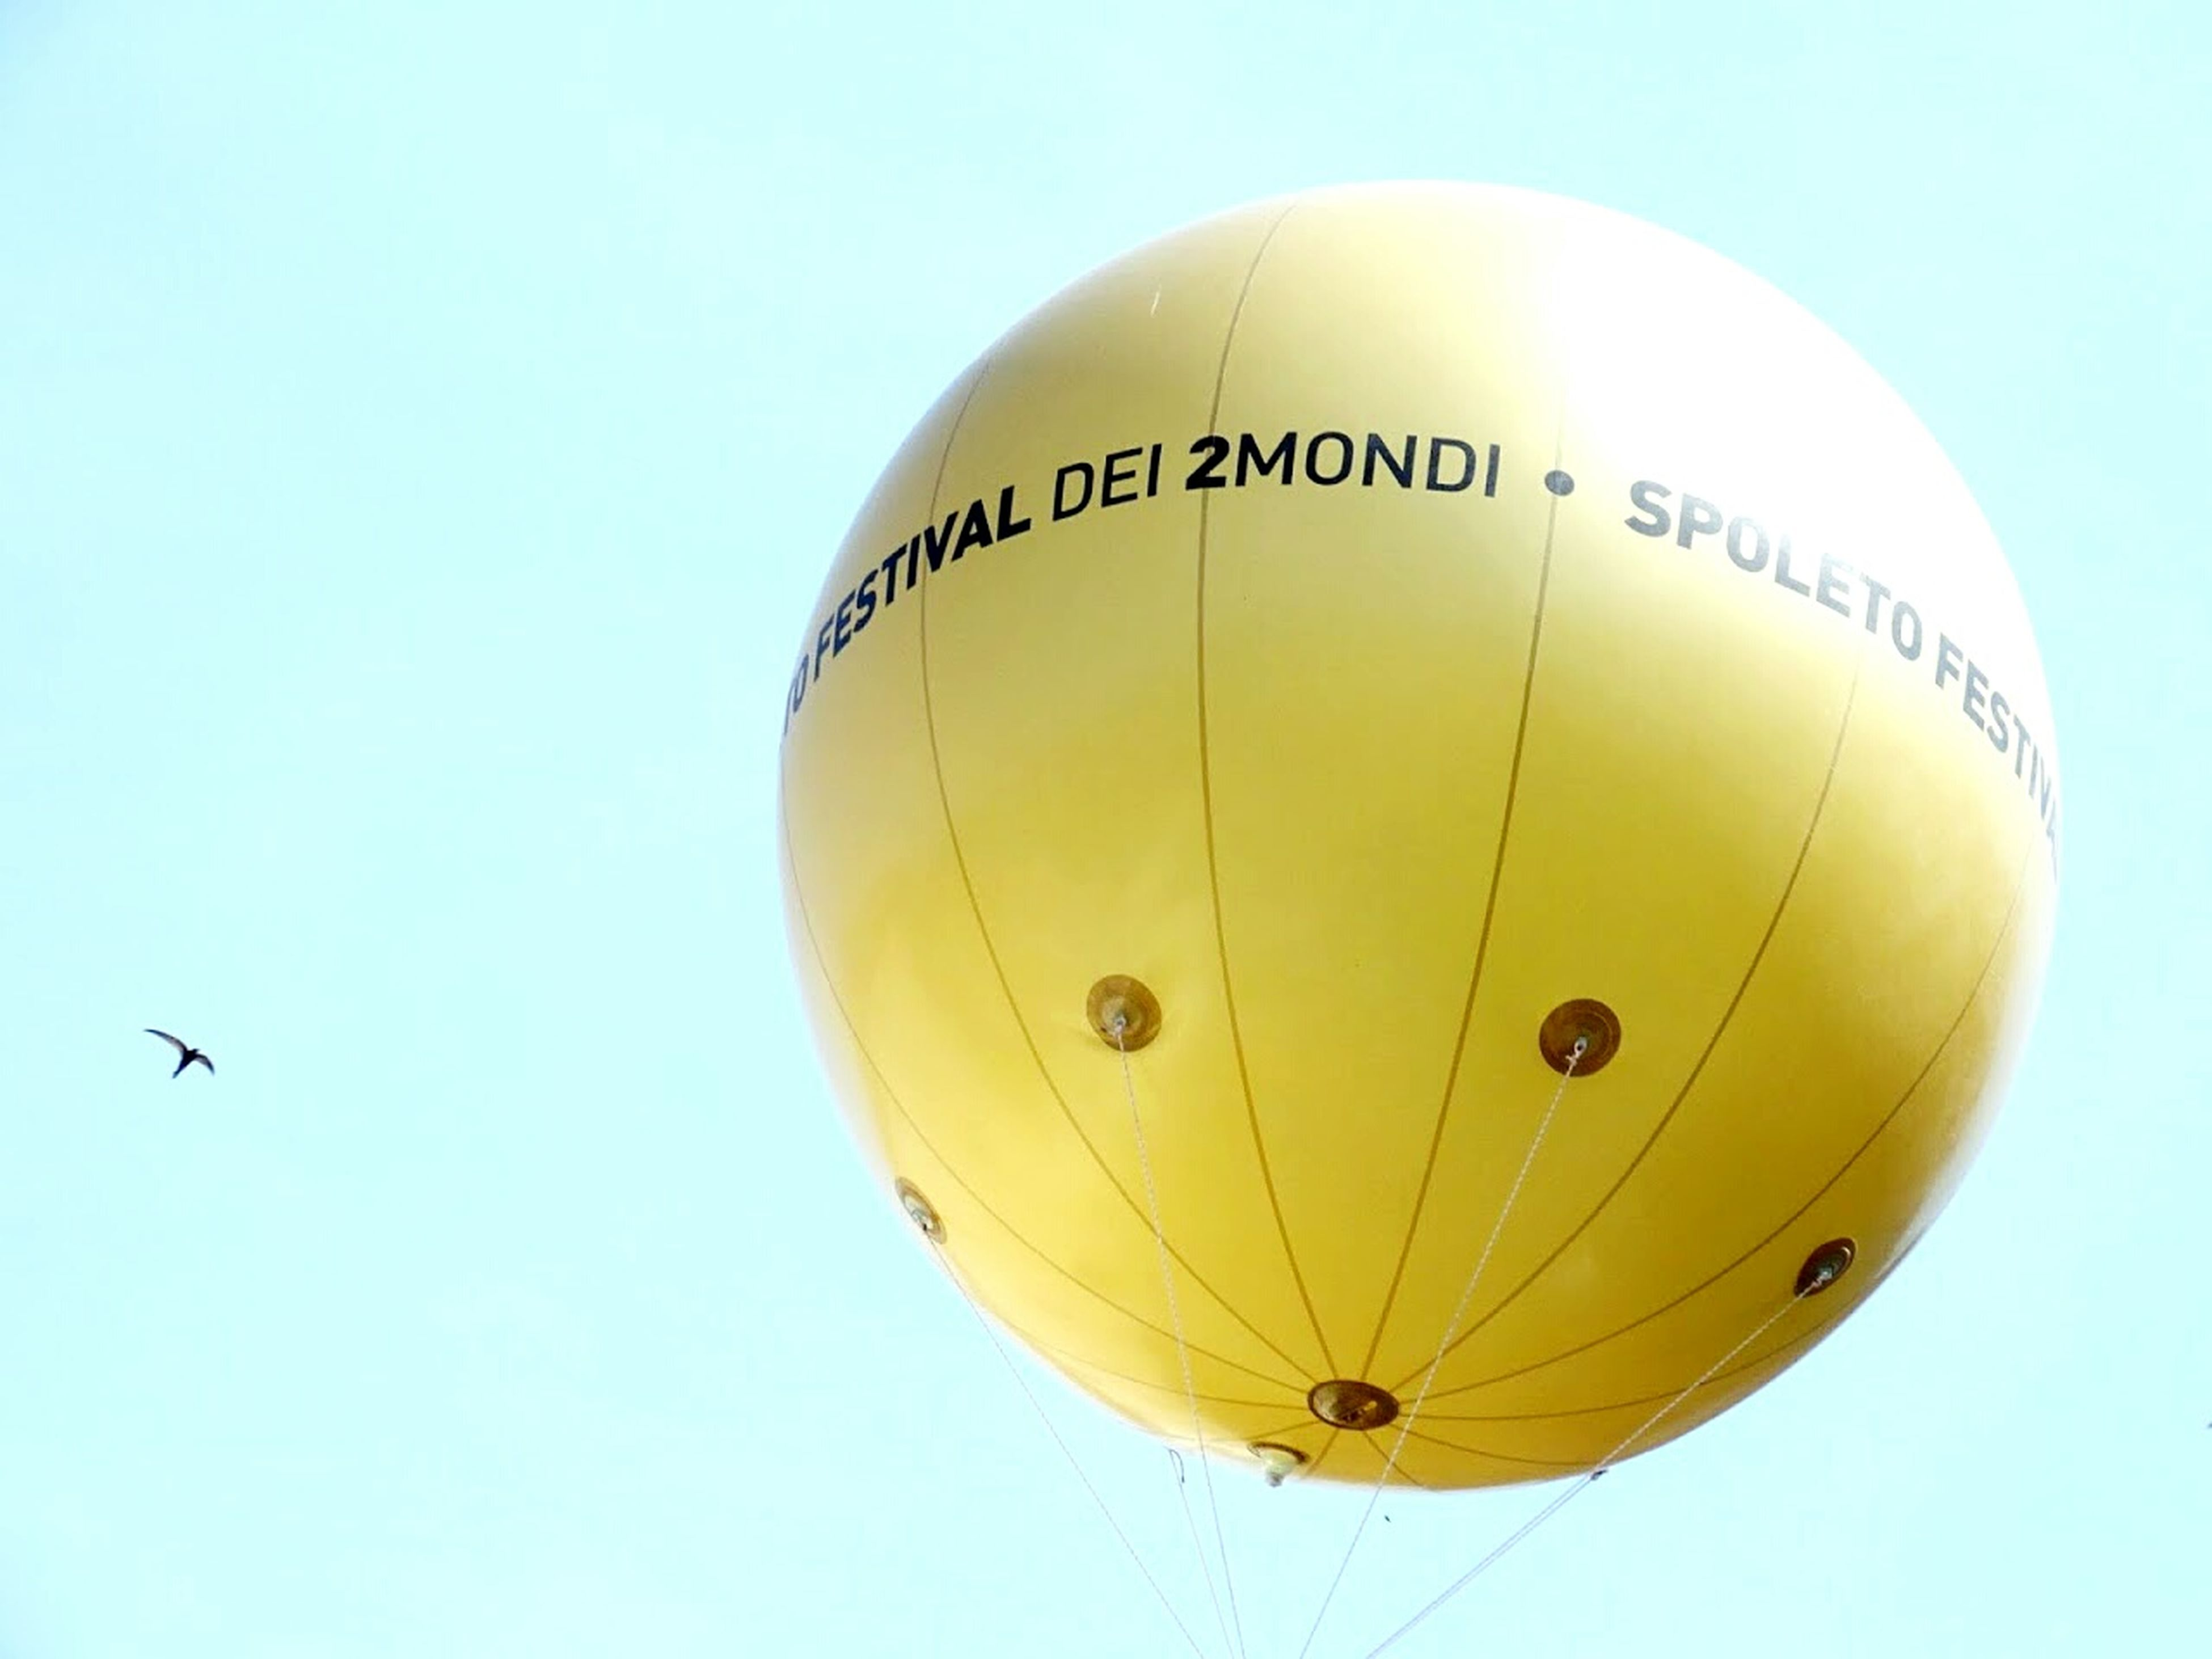 flying, low angle view, mid-air, clear sky, copy space, hot air balloon, parachute, transportation, bird, outdoors, adventure, air vehicle, animal themes, sky, blue, animals in the wild, no people, airplane, yellow, day